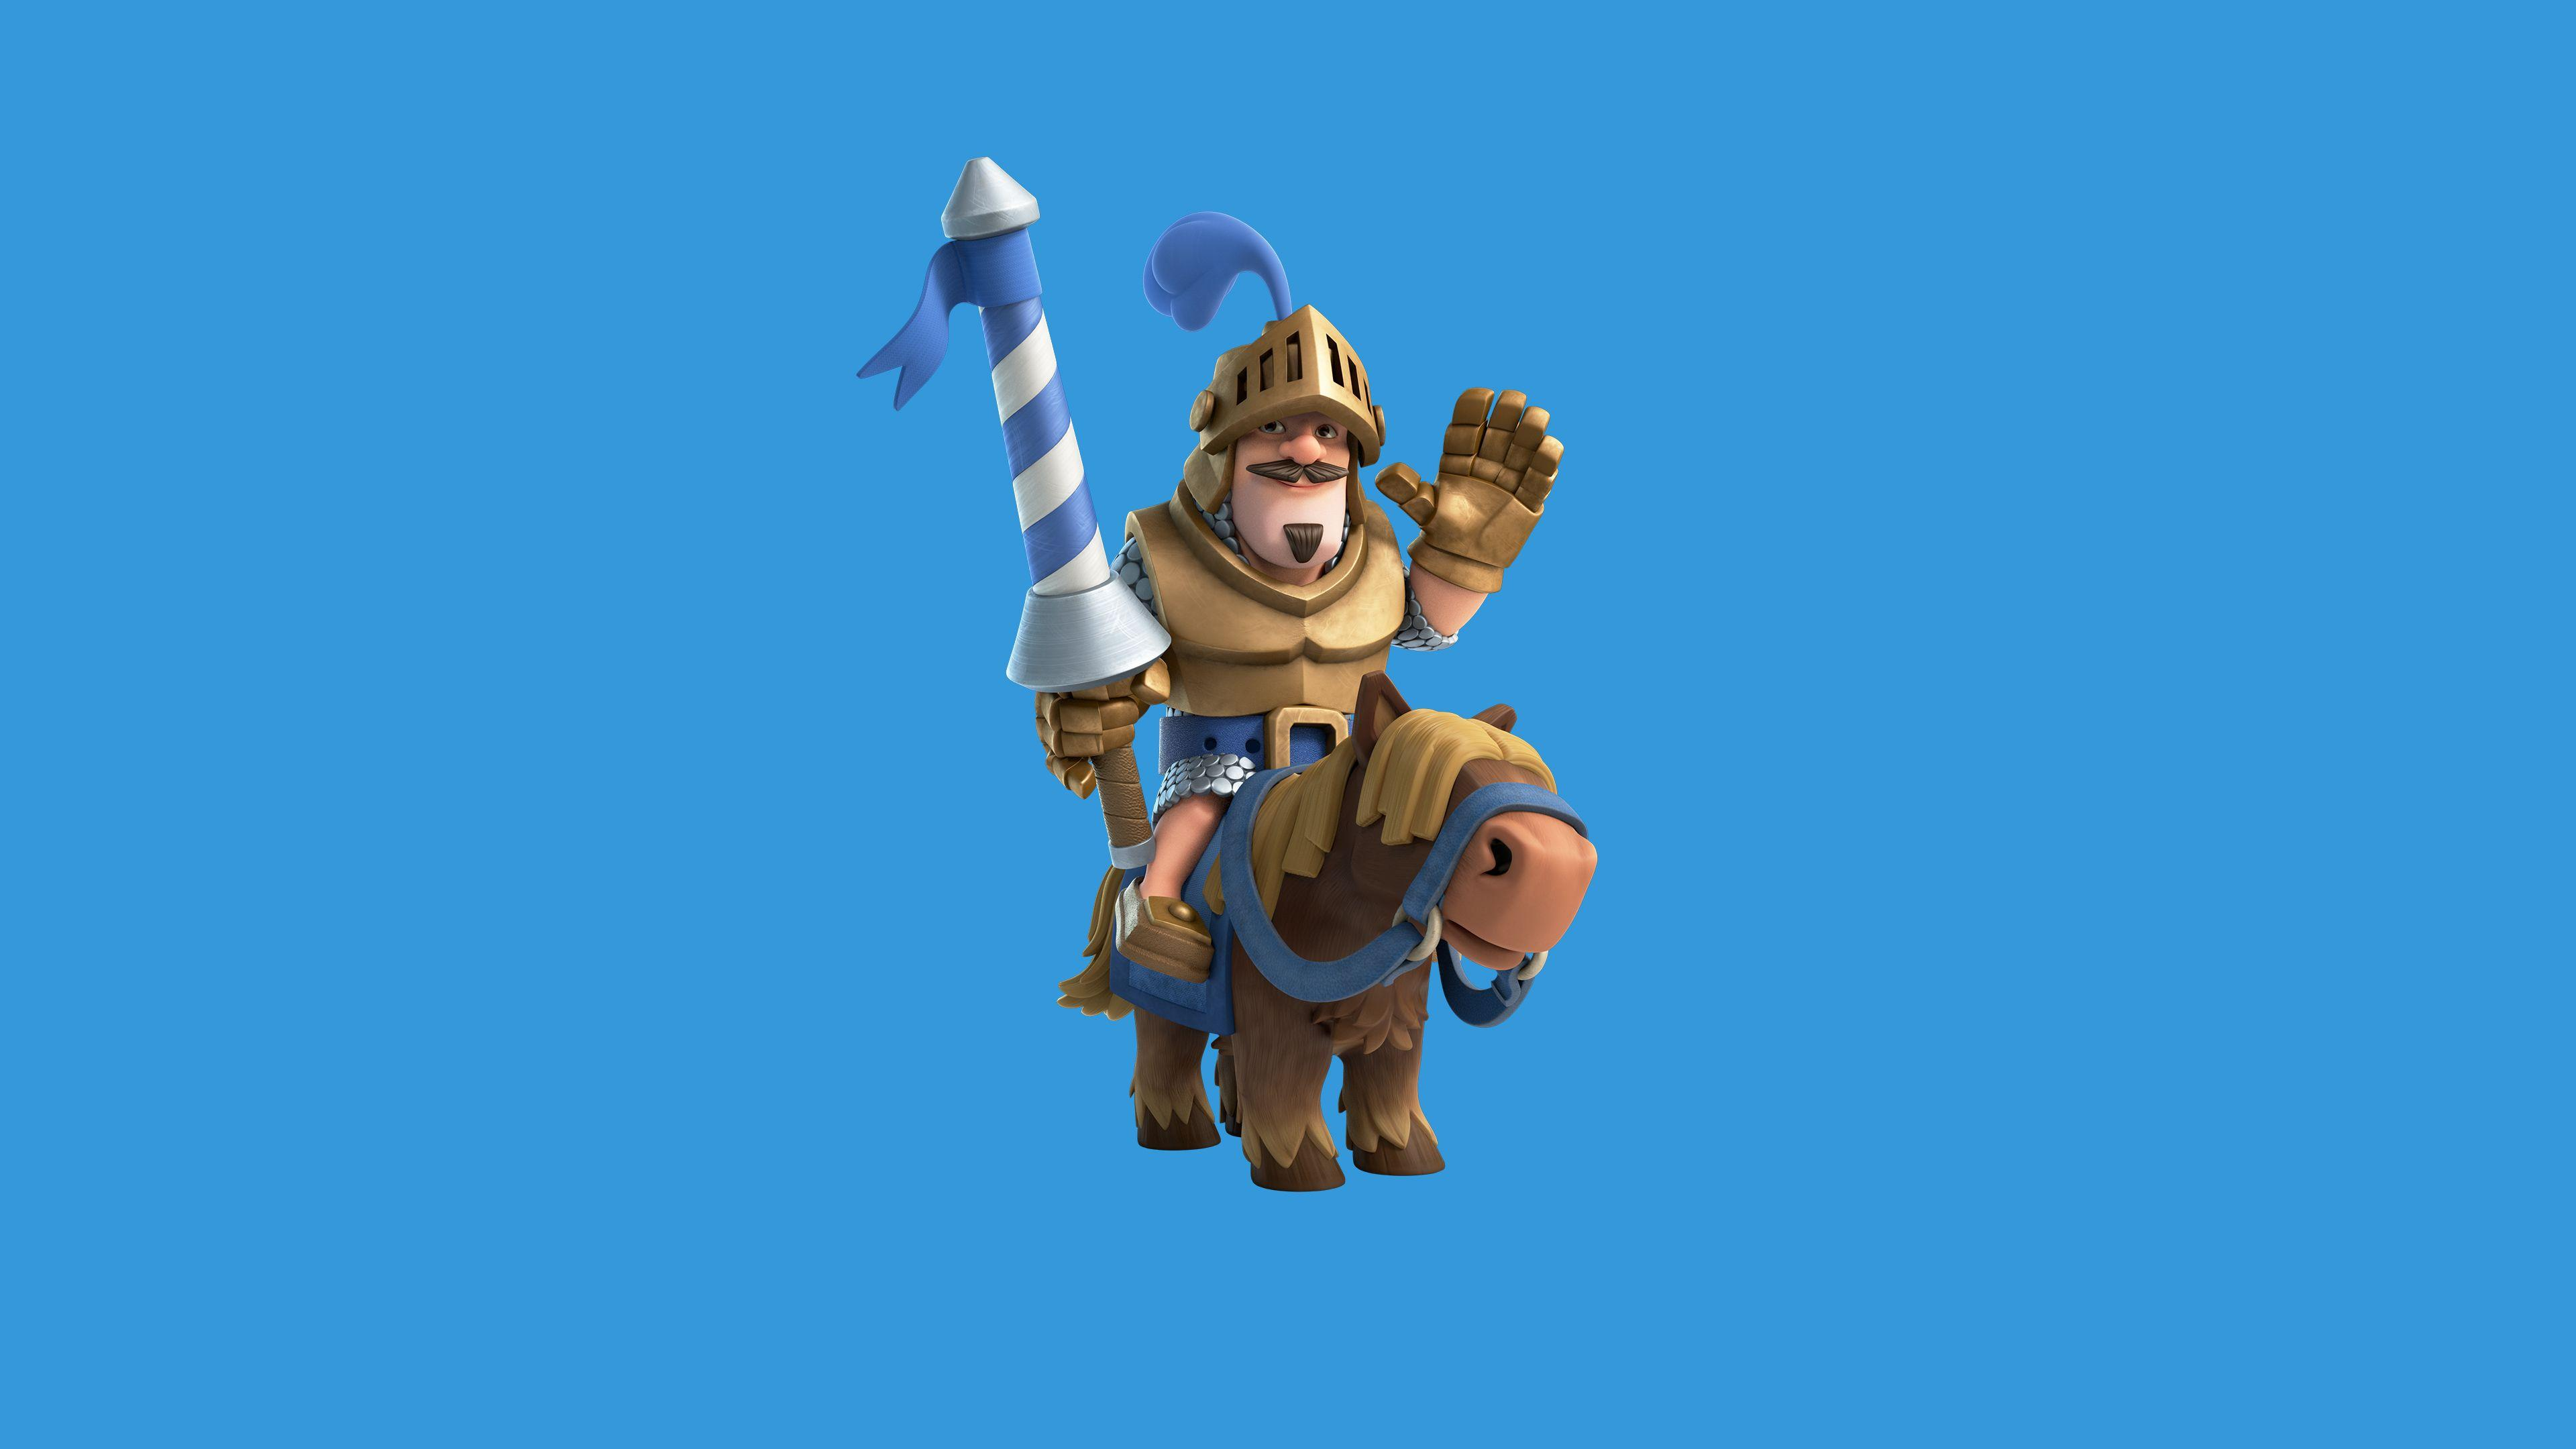 Clash Royale 2560x1440 Resolution Wallpapers